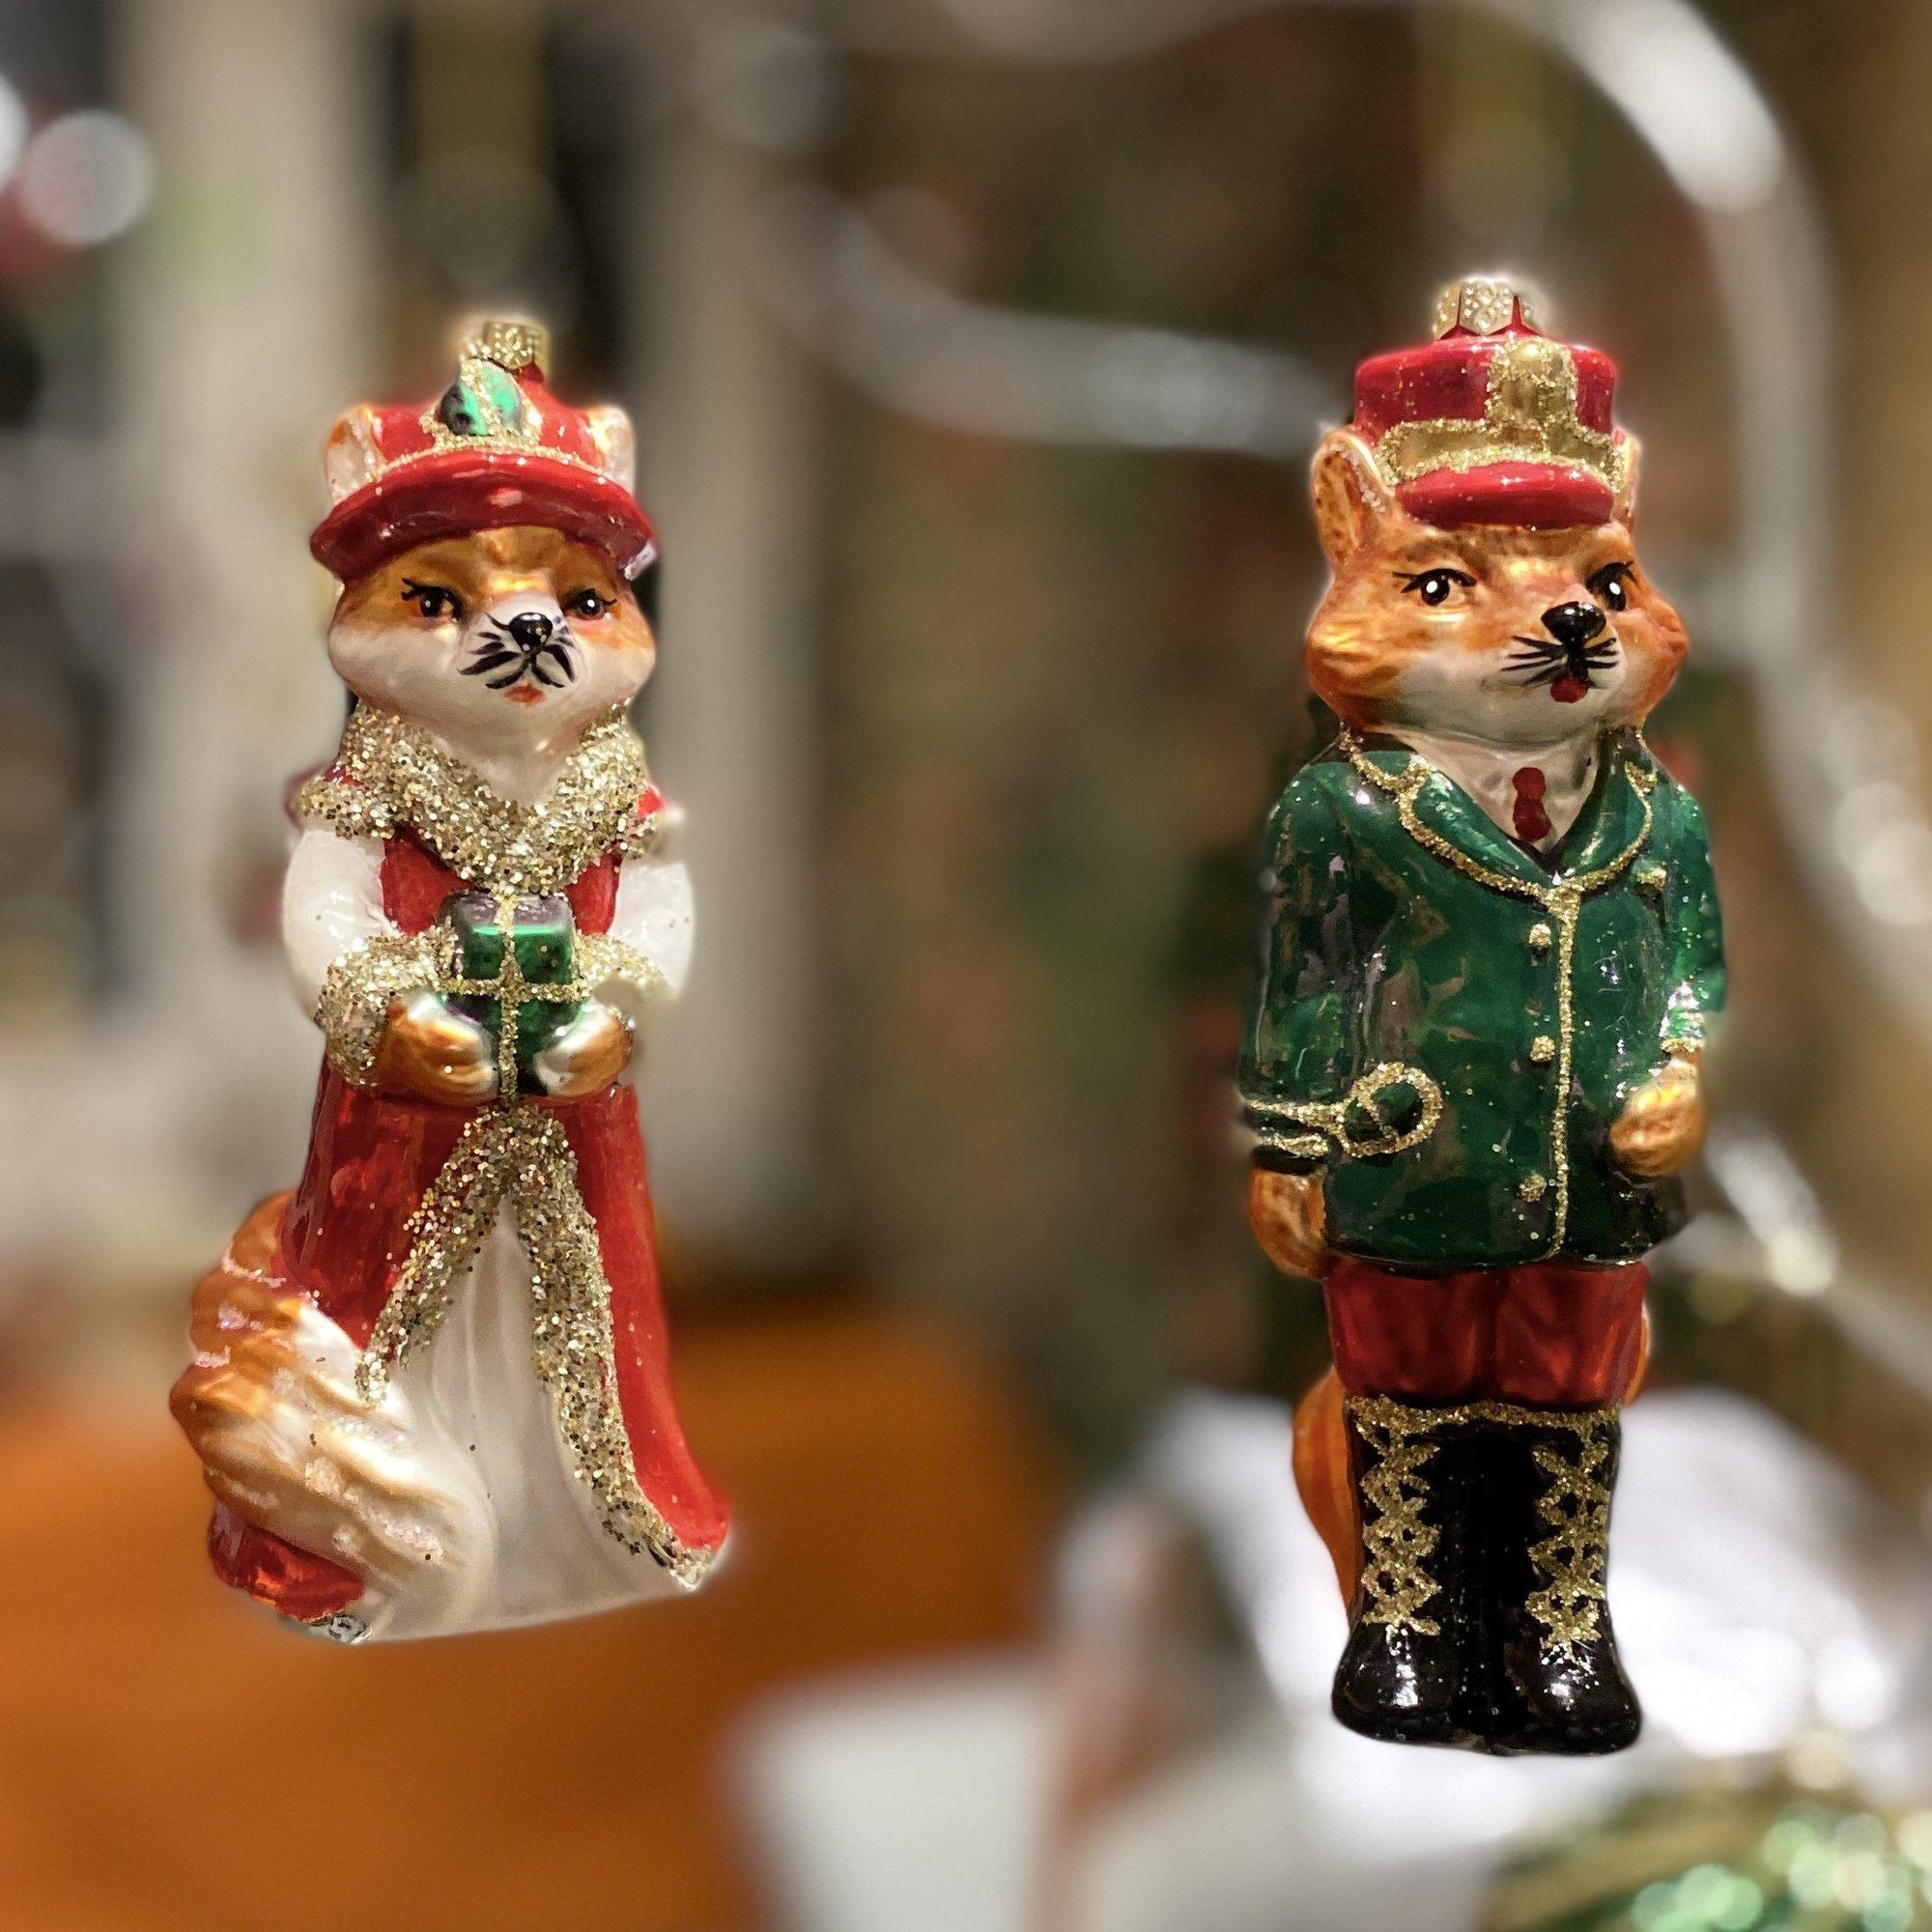 Lord and Lady Fox Hanging Christmas Decorations